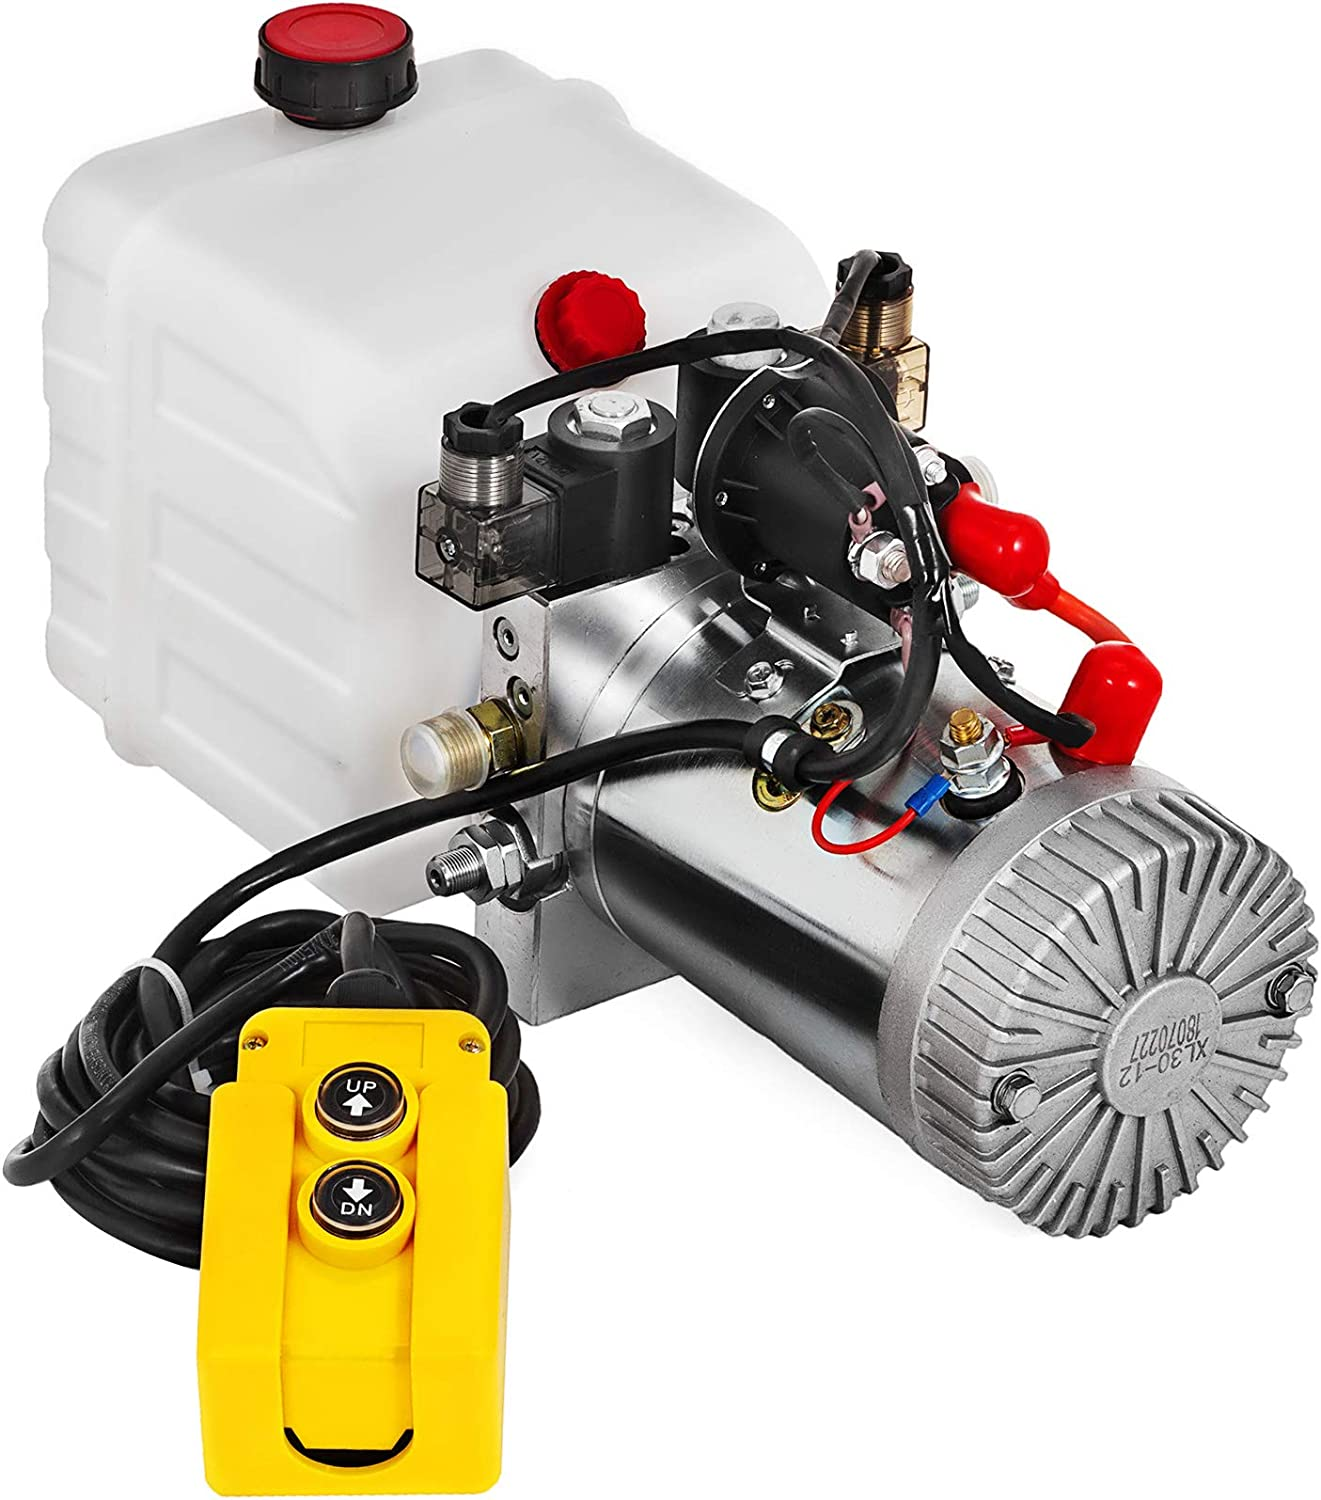 New item Mophorn Hydraulic Pump 3 Quart Power Some reservation Unit Actin Double